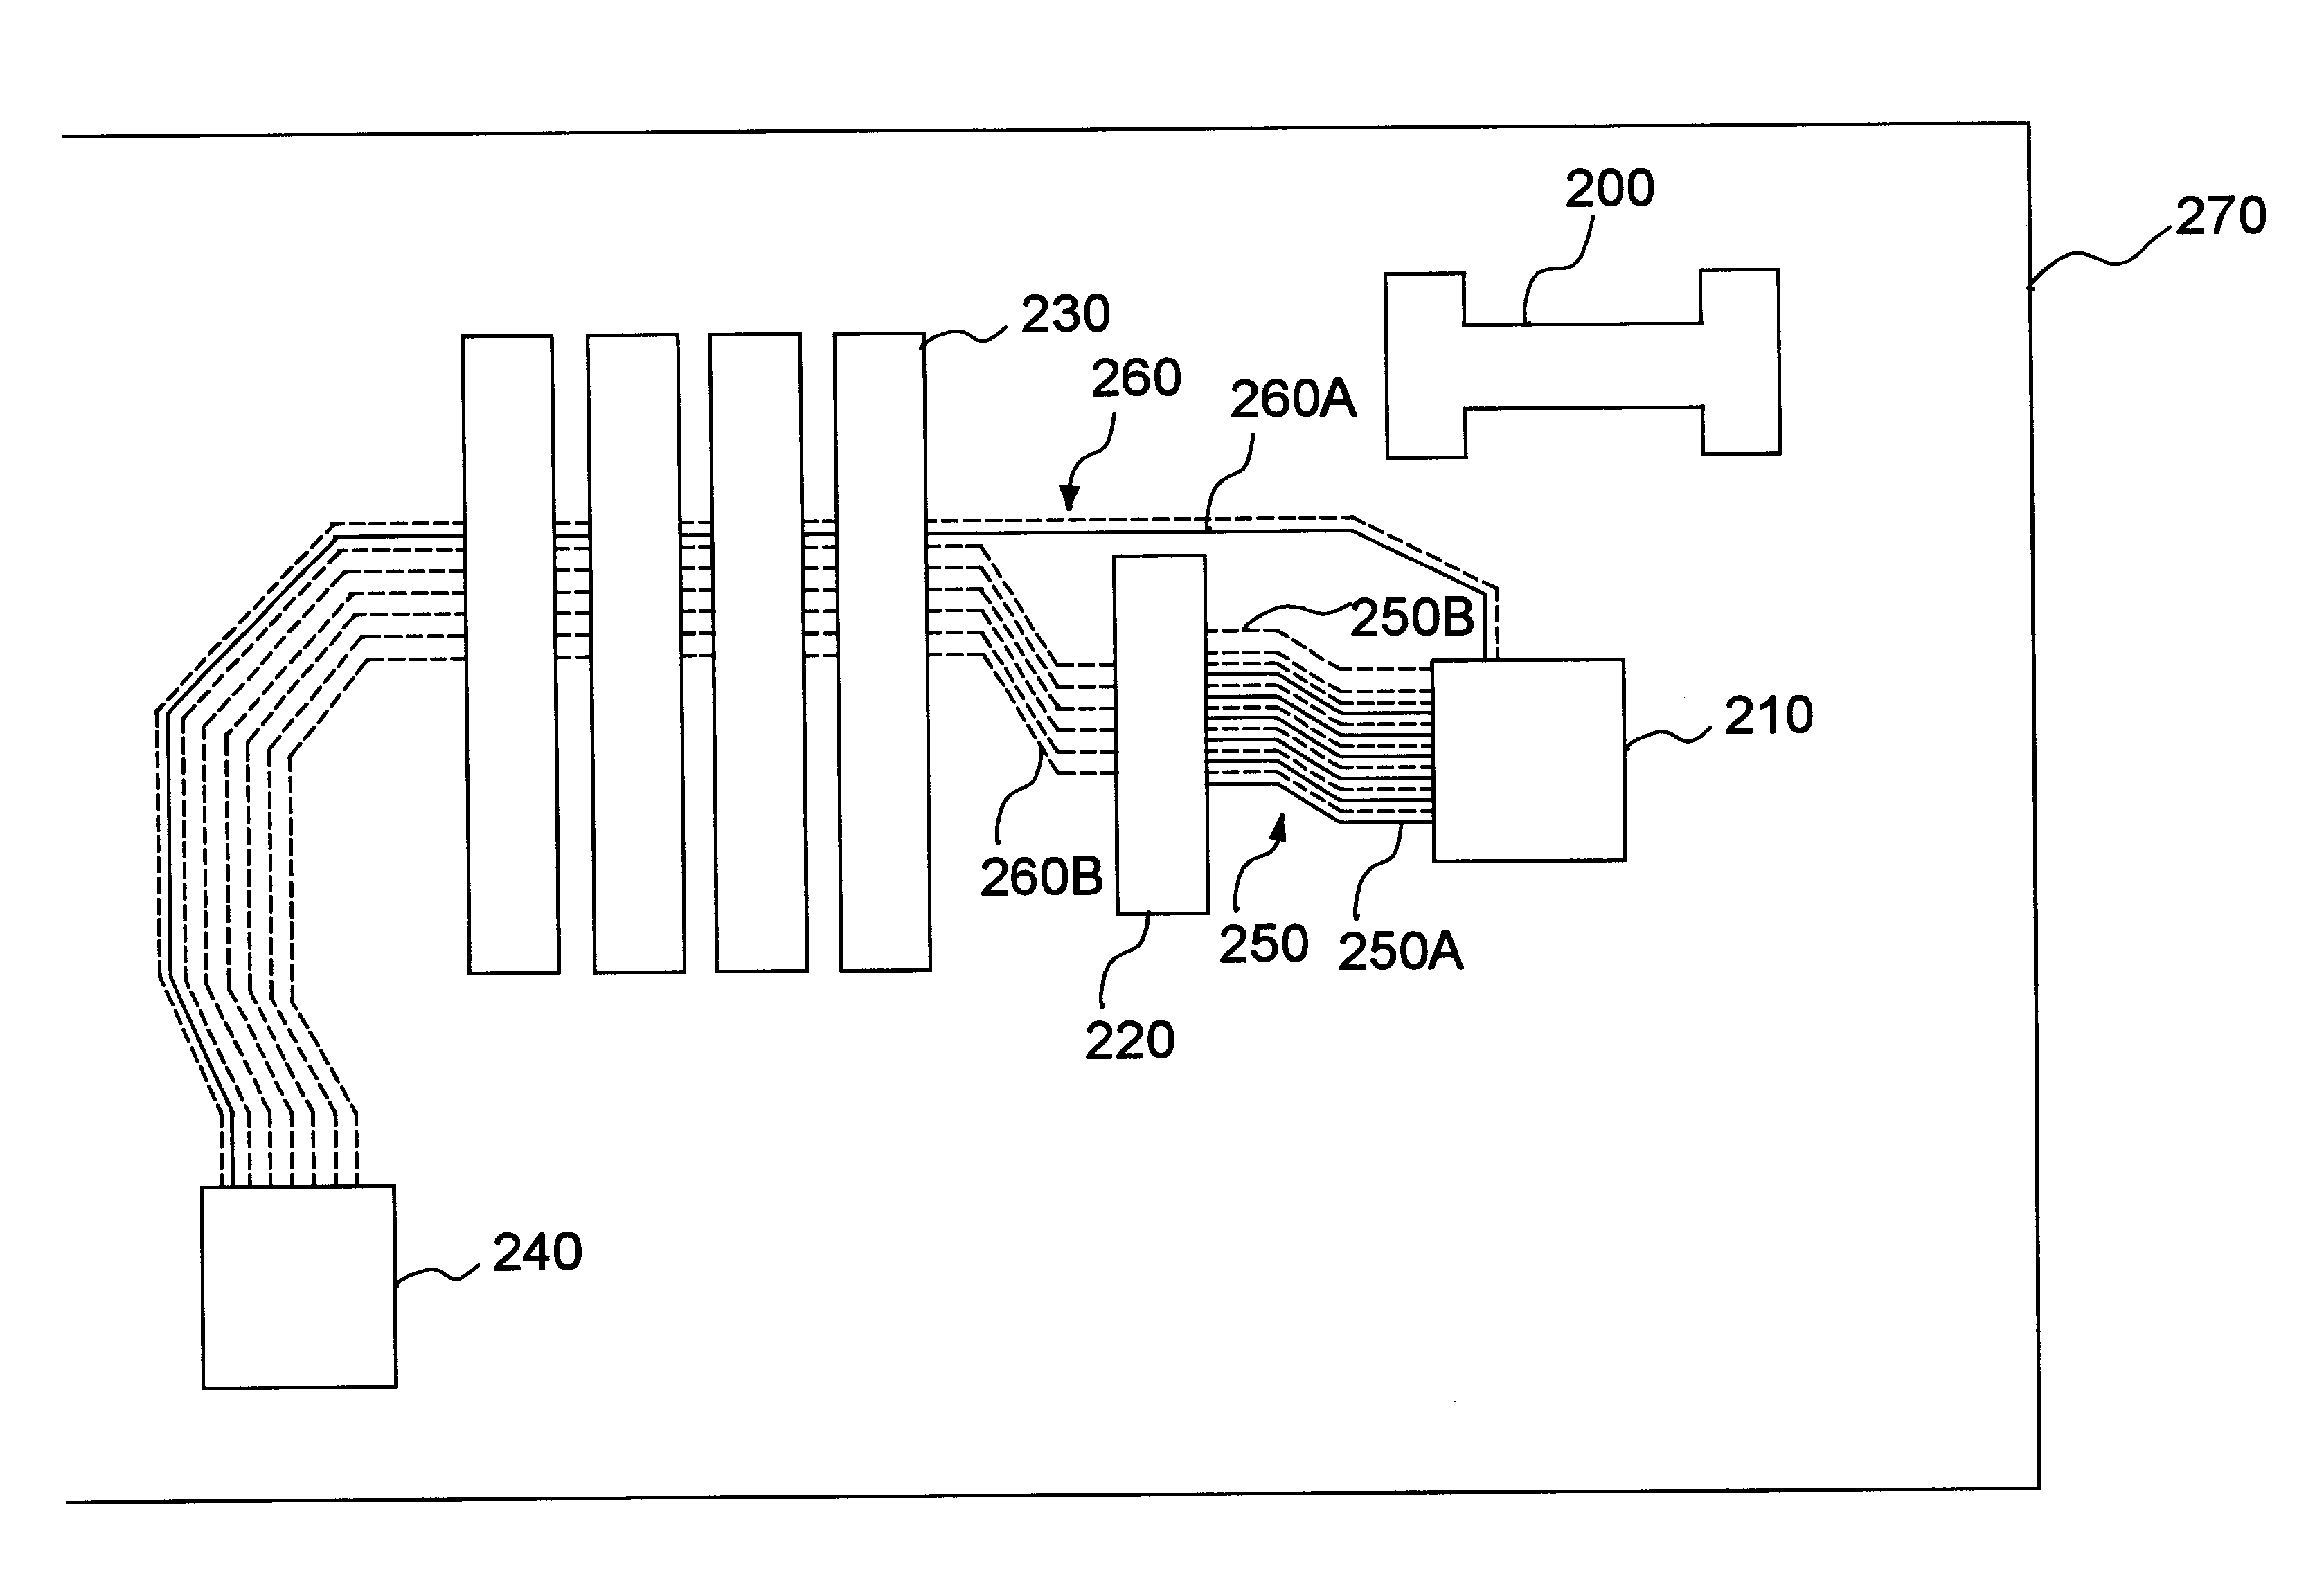 patent us6384346 - trace layout of a printed circuit board with agp and pci slots